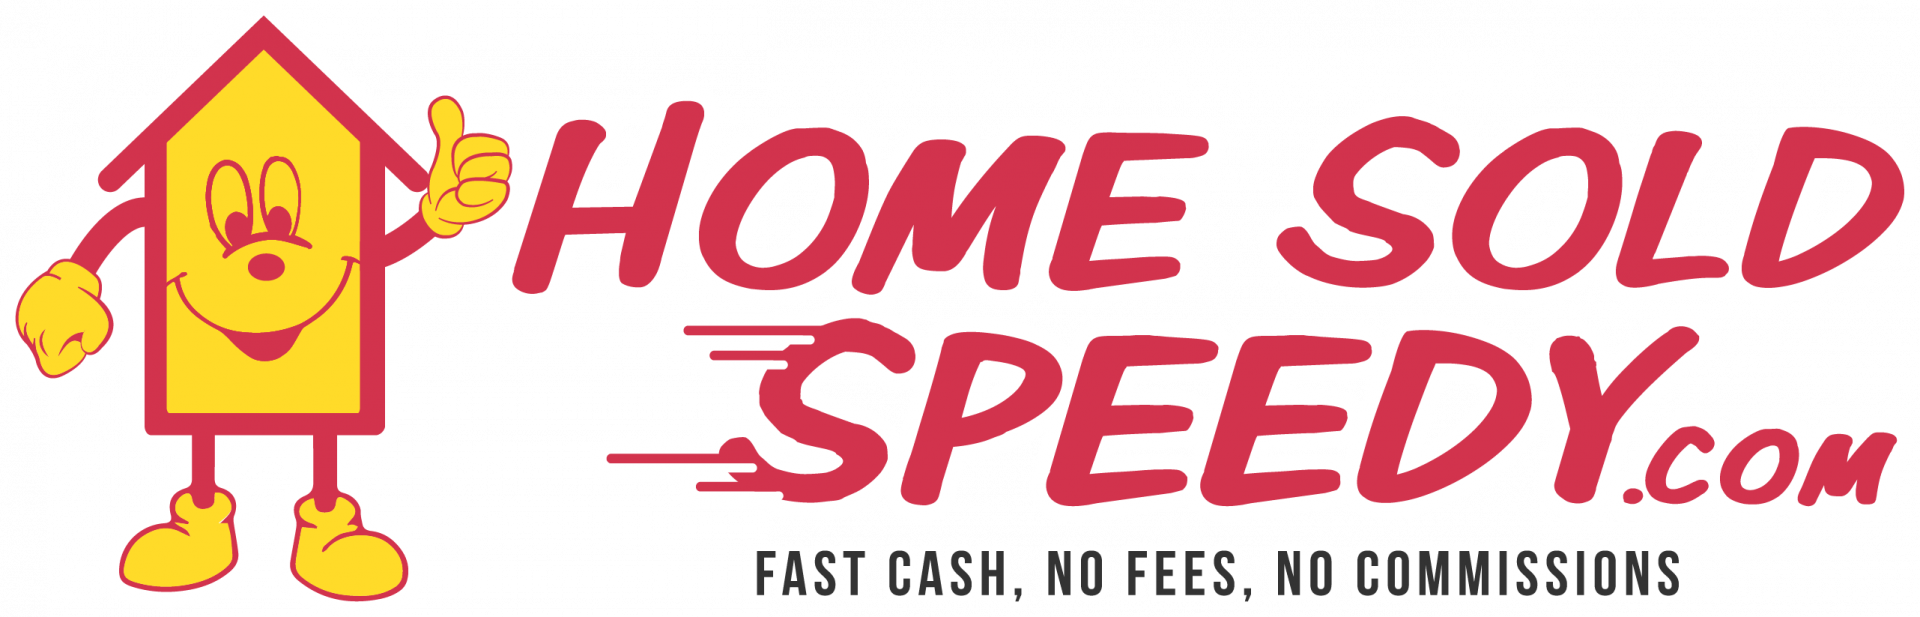 Home Sold Speedy!  logo